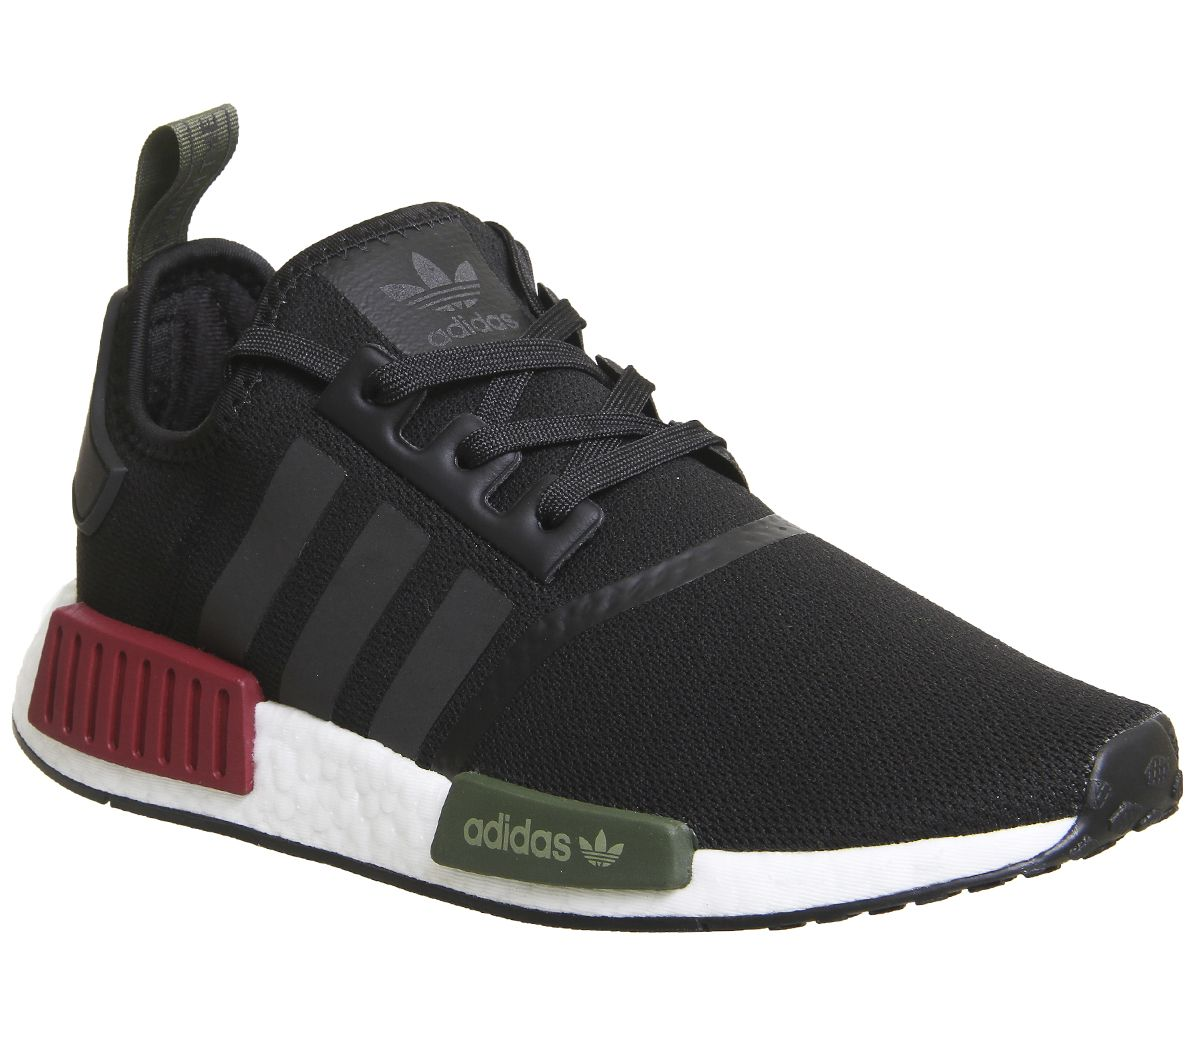 87801694630cd adidas Nmd R1 Trainers Black Burgundy Olive Exclusive - His trainers